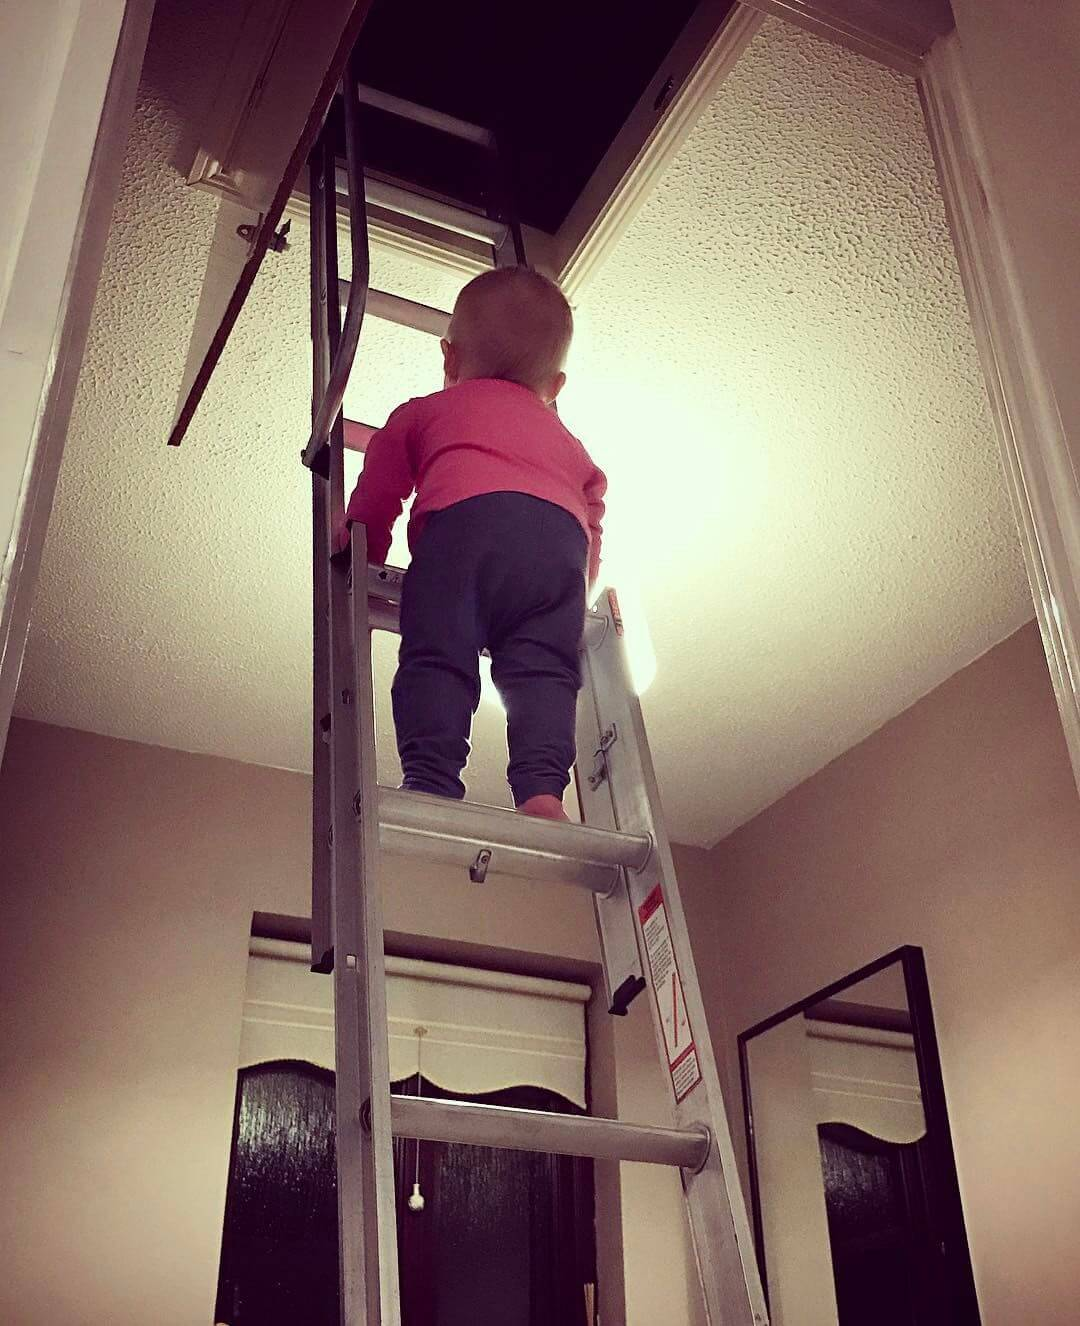 Dad Photoshops his daughter into dangerous situations 4 (1)